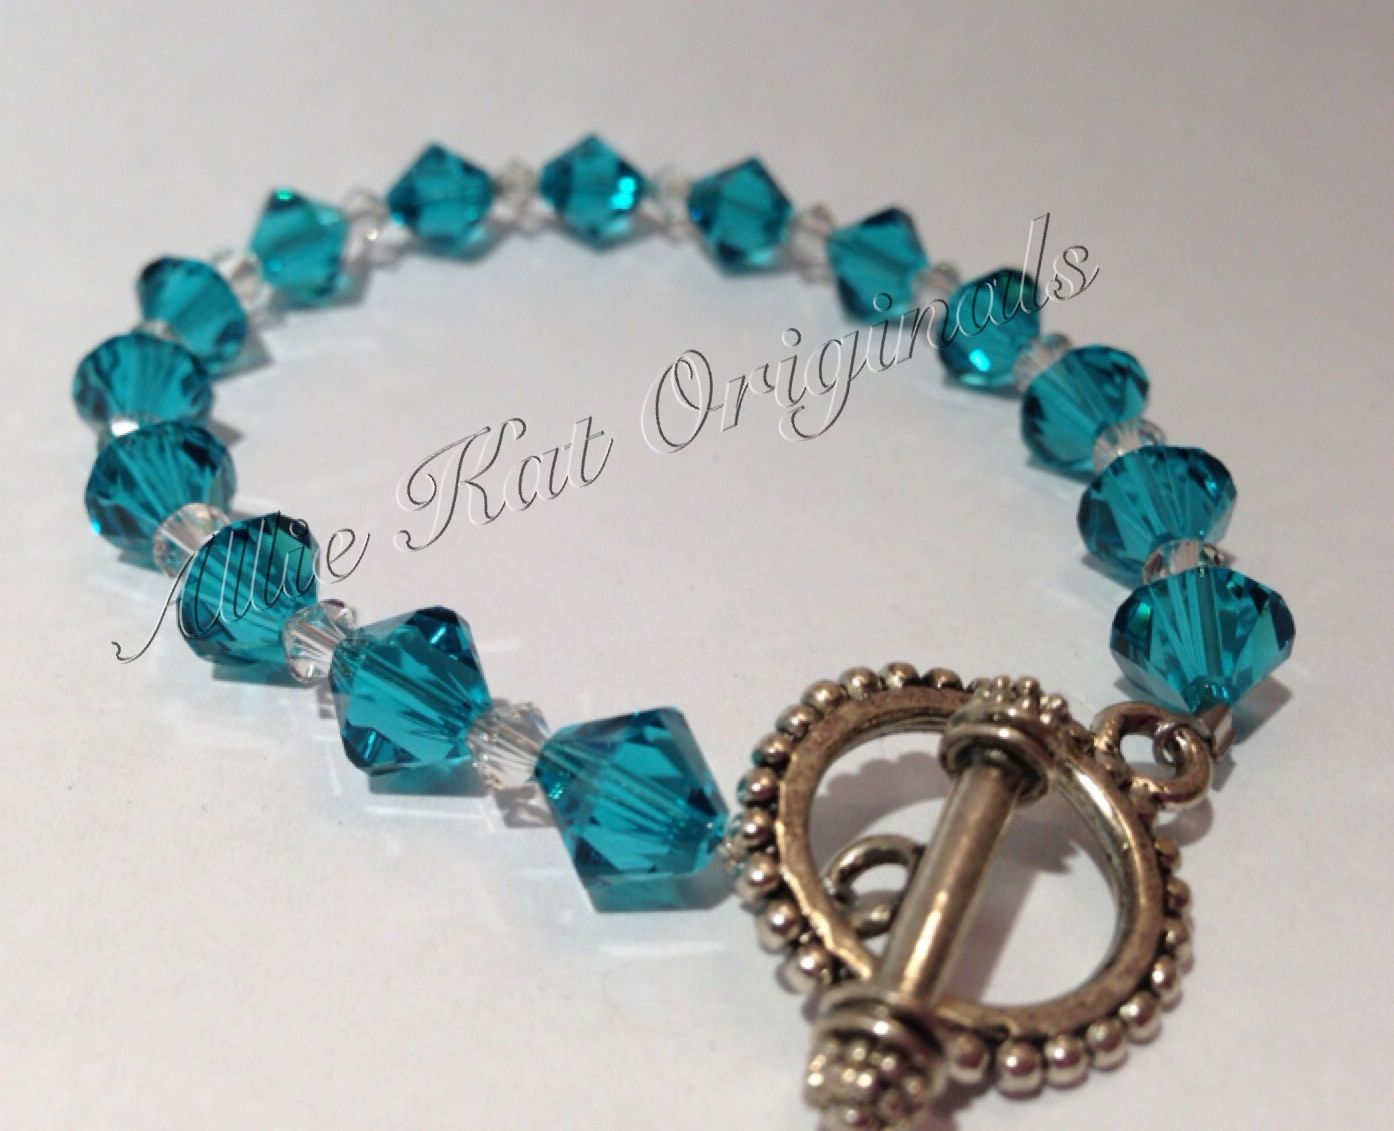 Turquoise and clear Swarovski bracelet. On Etsy https://www.etsy.com/your/listings?ref=si_your_shop